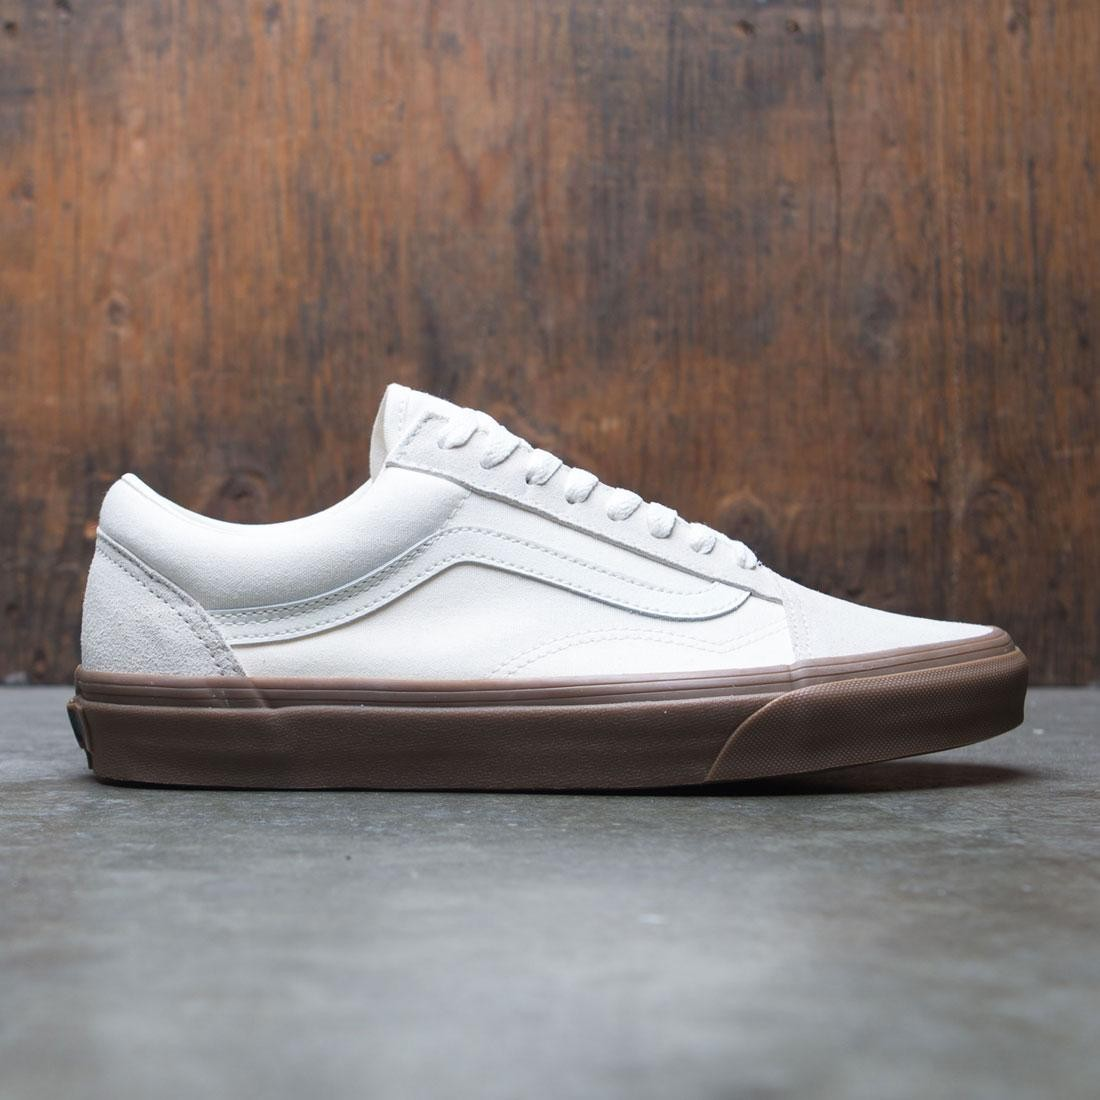 Vans Men Old Skool - Suede white gum 6d755a0d3